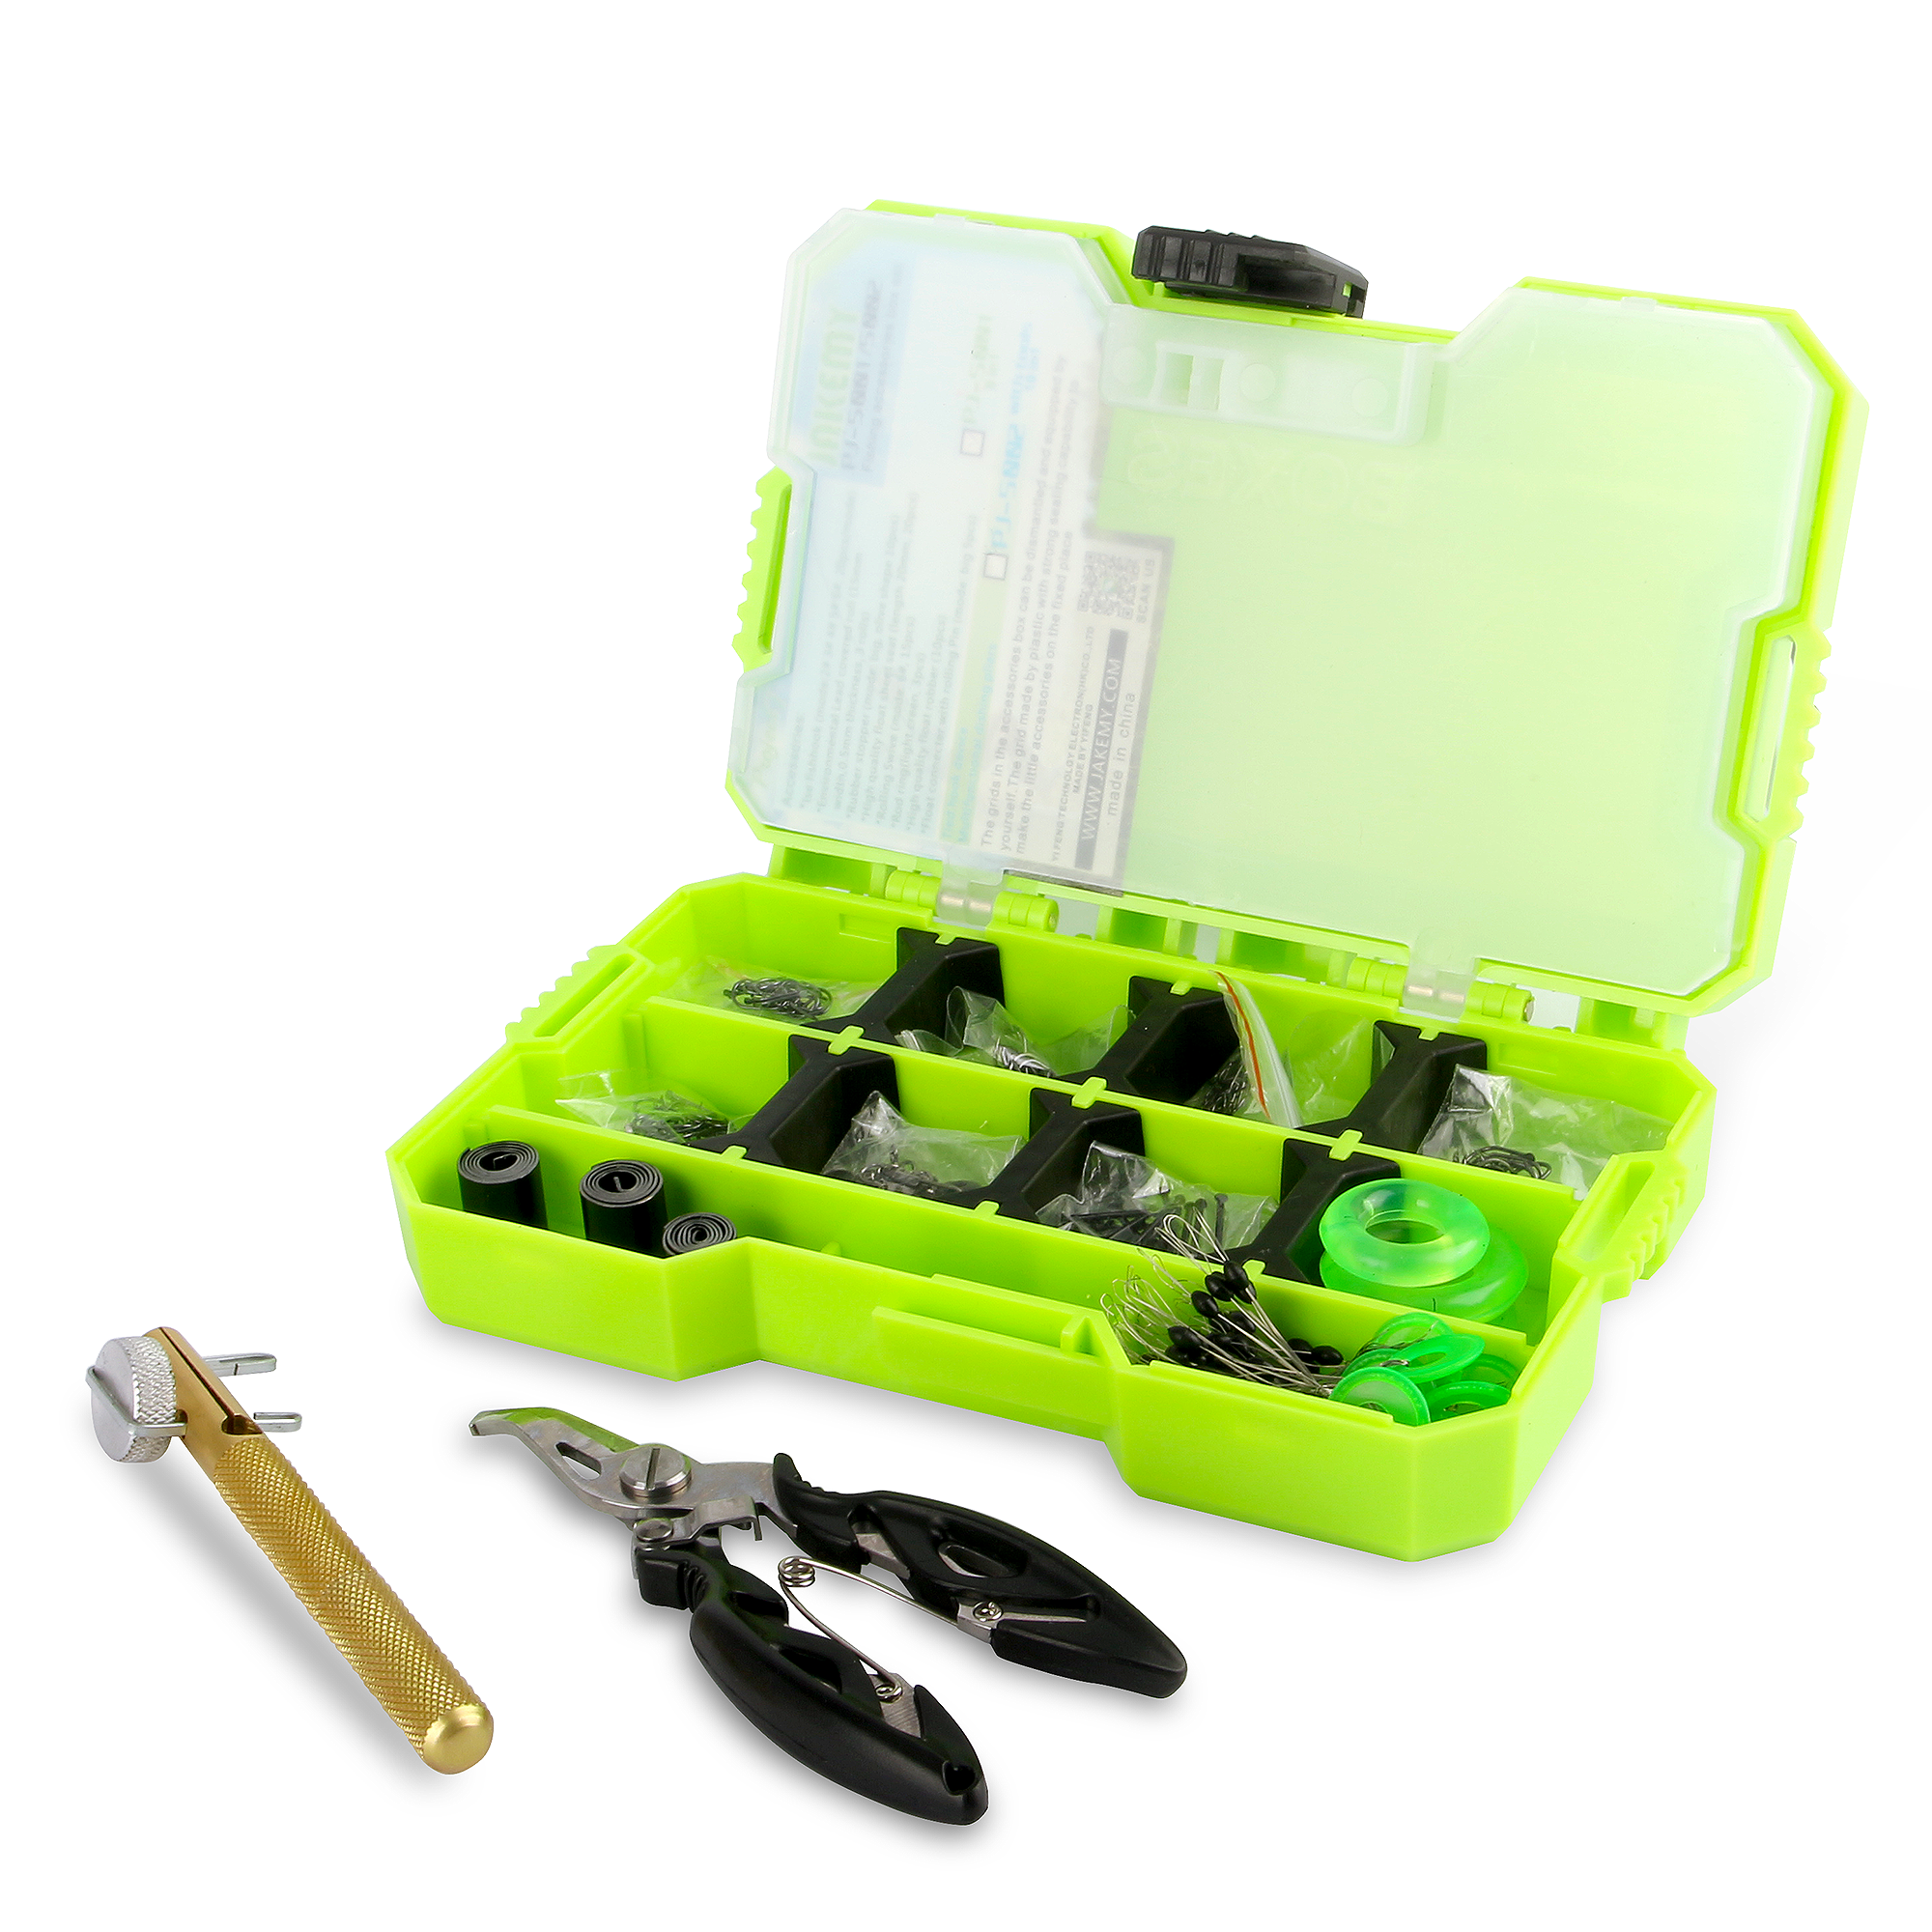 JAKEMY Fishing Tackle Box New High Quality Design Large Capacity Waterproof Double Side Low Price Carp Fishing Accessories Box